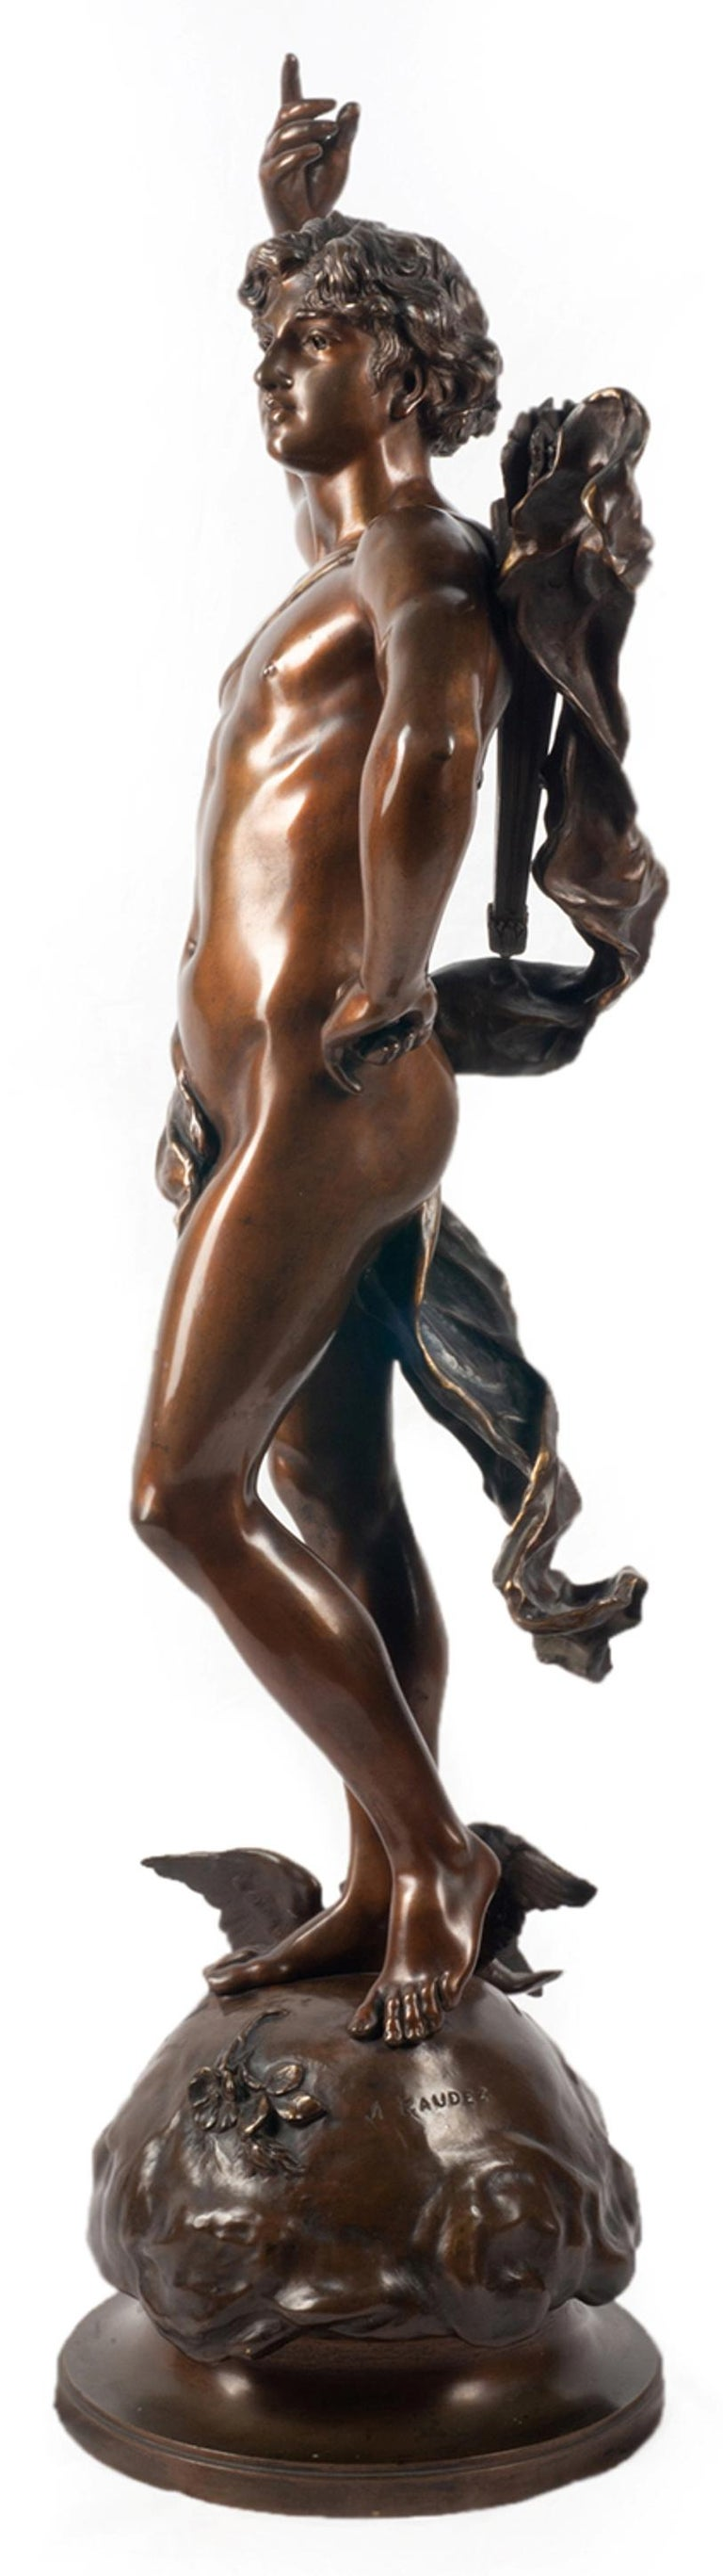 19th Century classical Bronze statue of an archer, by A. Gaudez In Good Condition For Sale In Brighton, Sussex